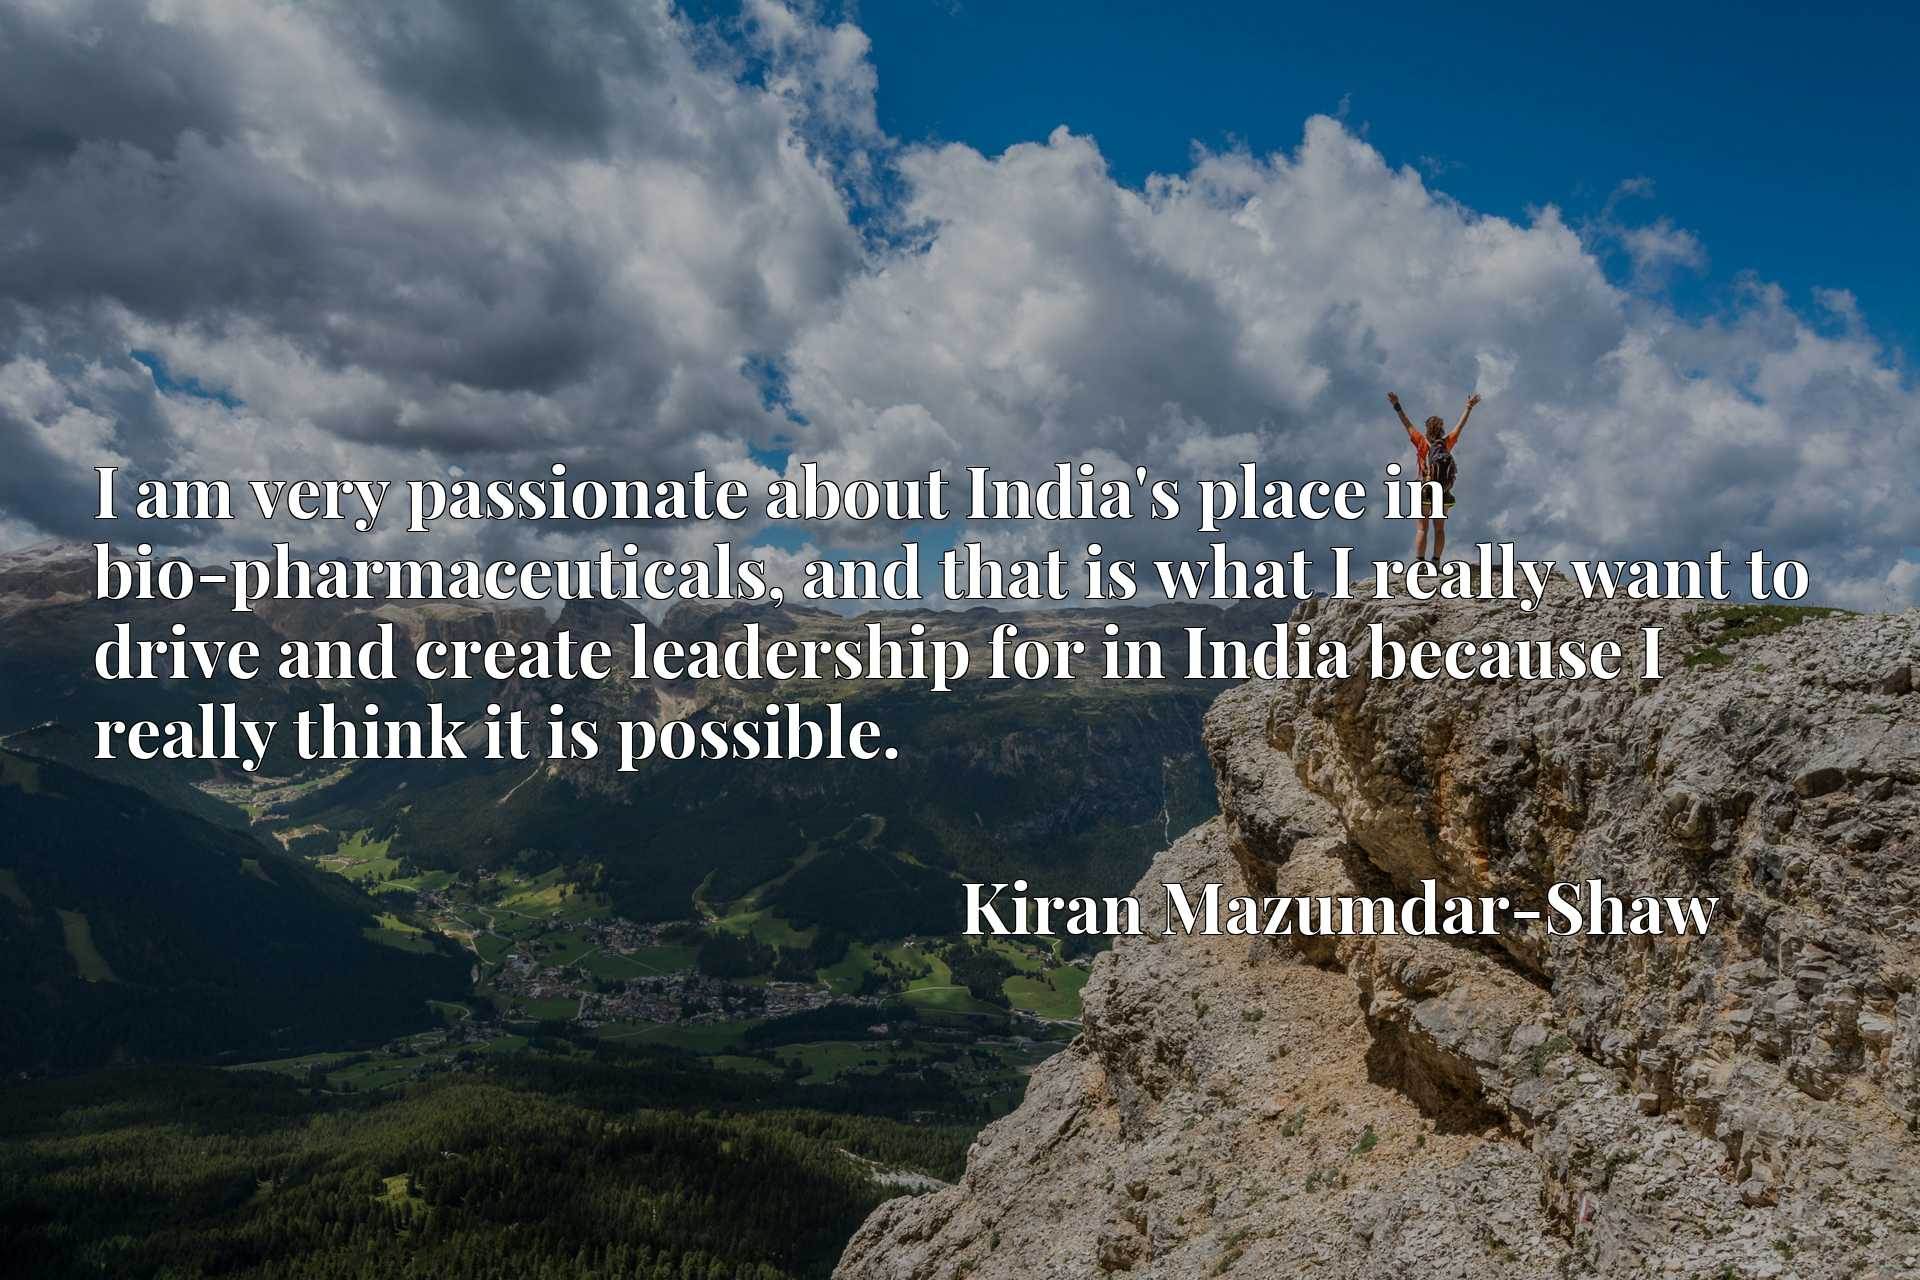 I am very passionate about India's place in bio-pharmaceuticals, and that is what I really want to drive and create leadership for in India because I really think it is possible.